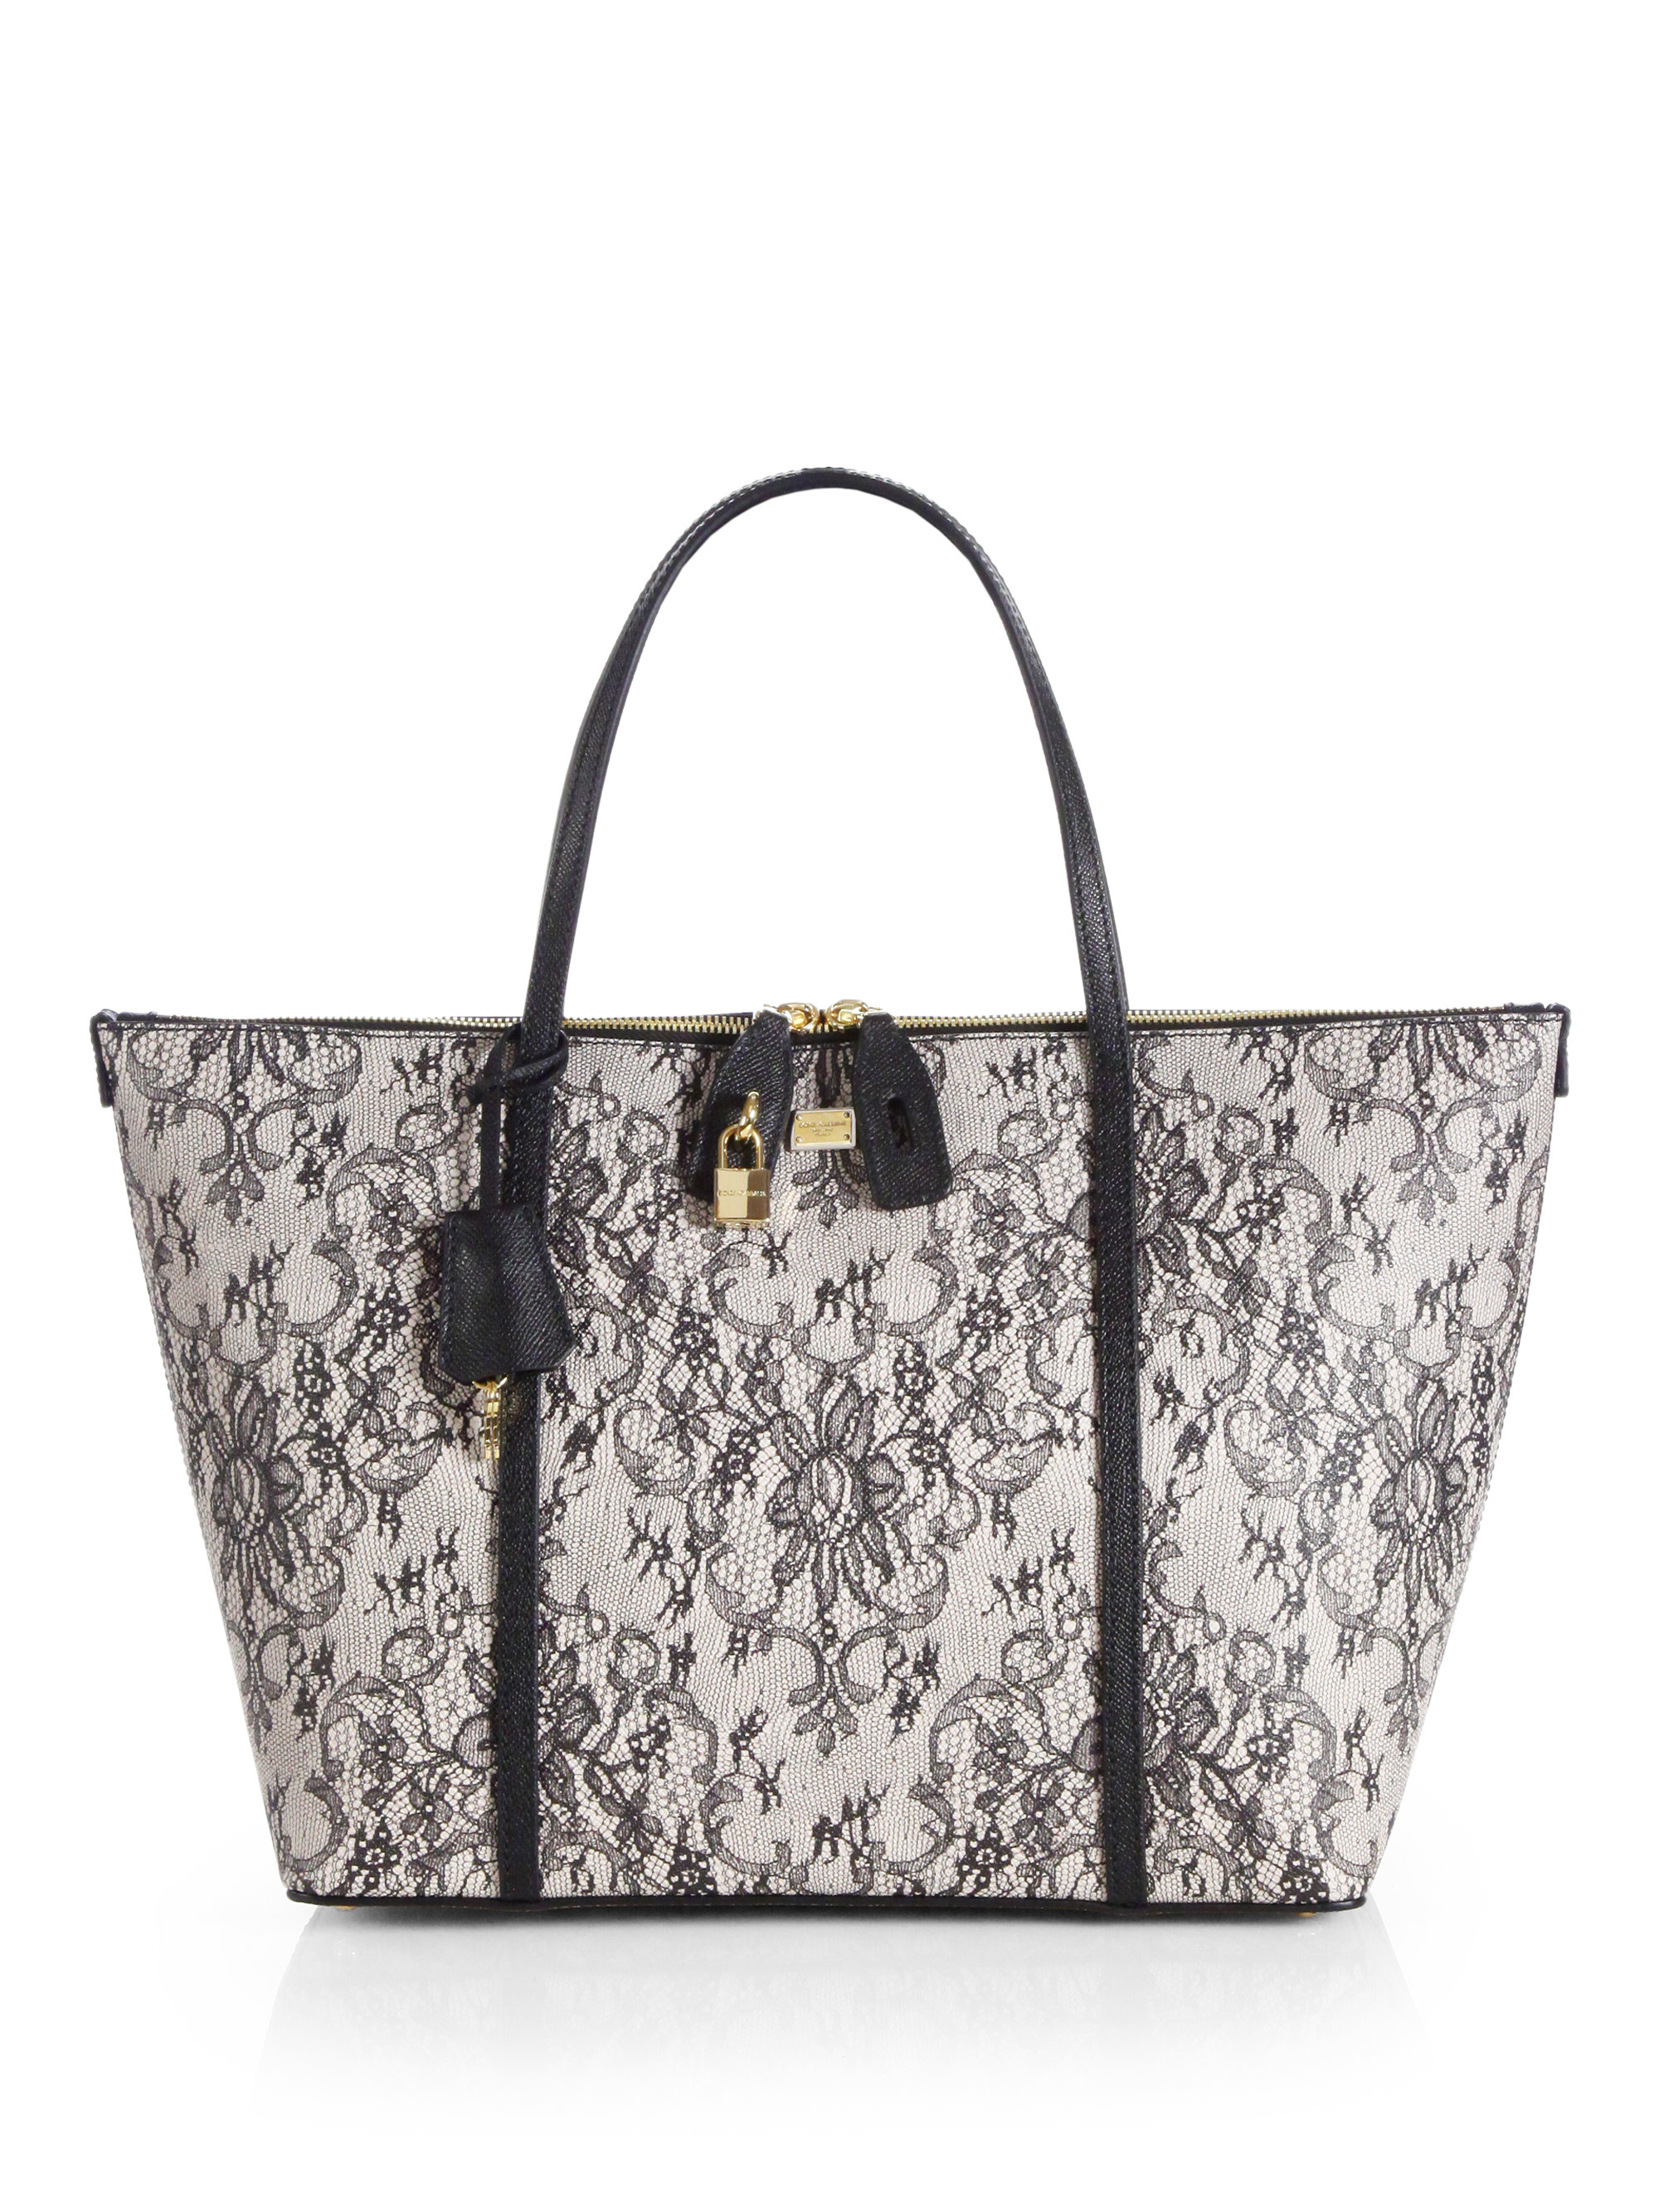 5c8877392cd Gallery. Previously sold at: Saks Fifth Avenue · Women's Dolce Gabbana  Sicily